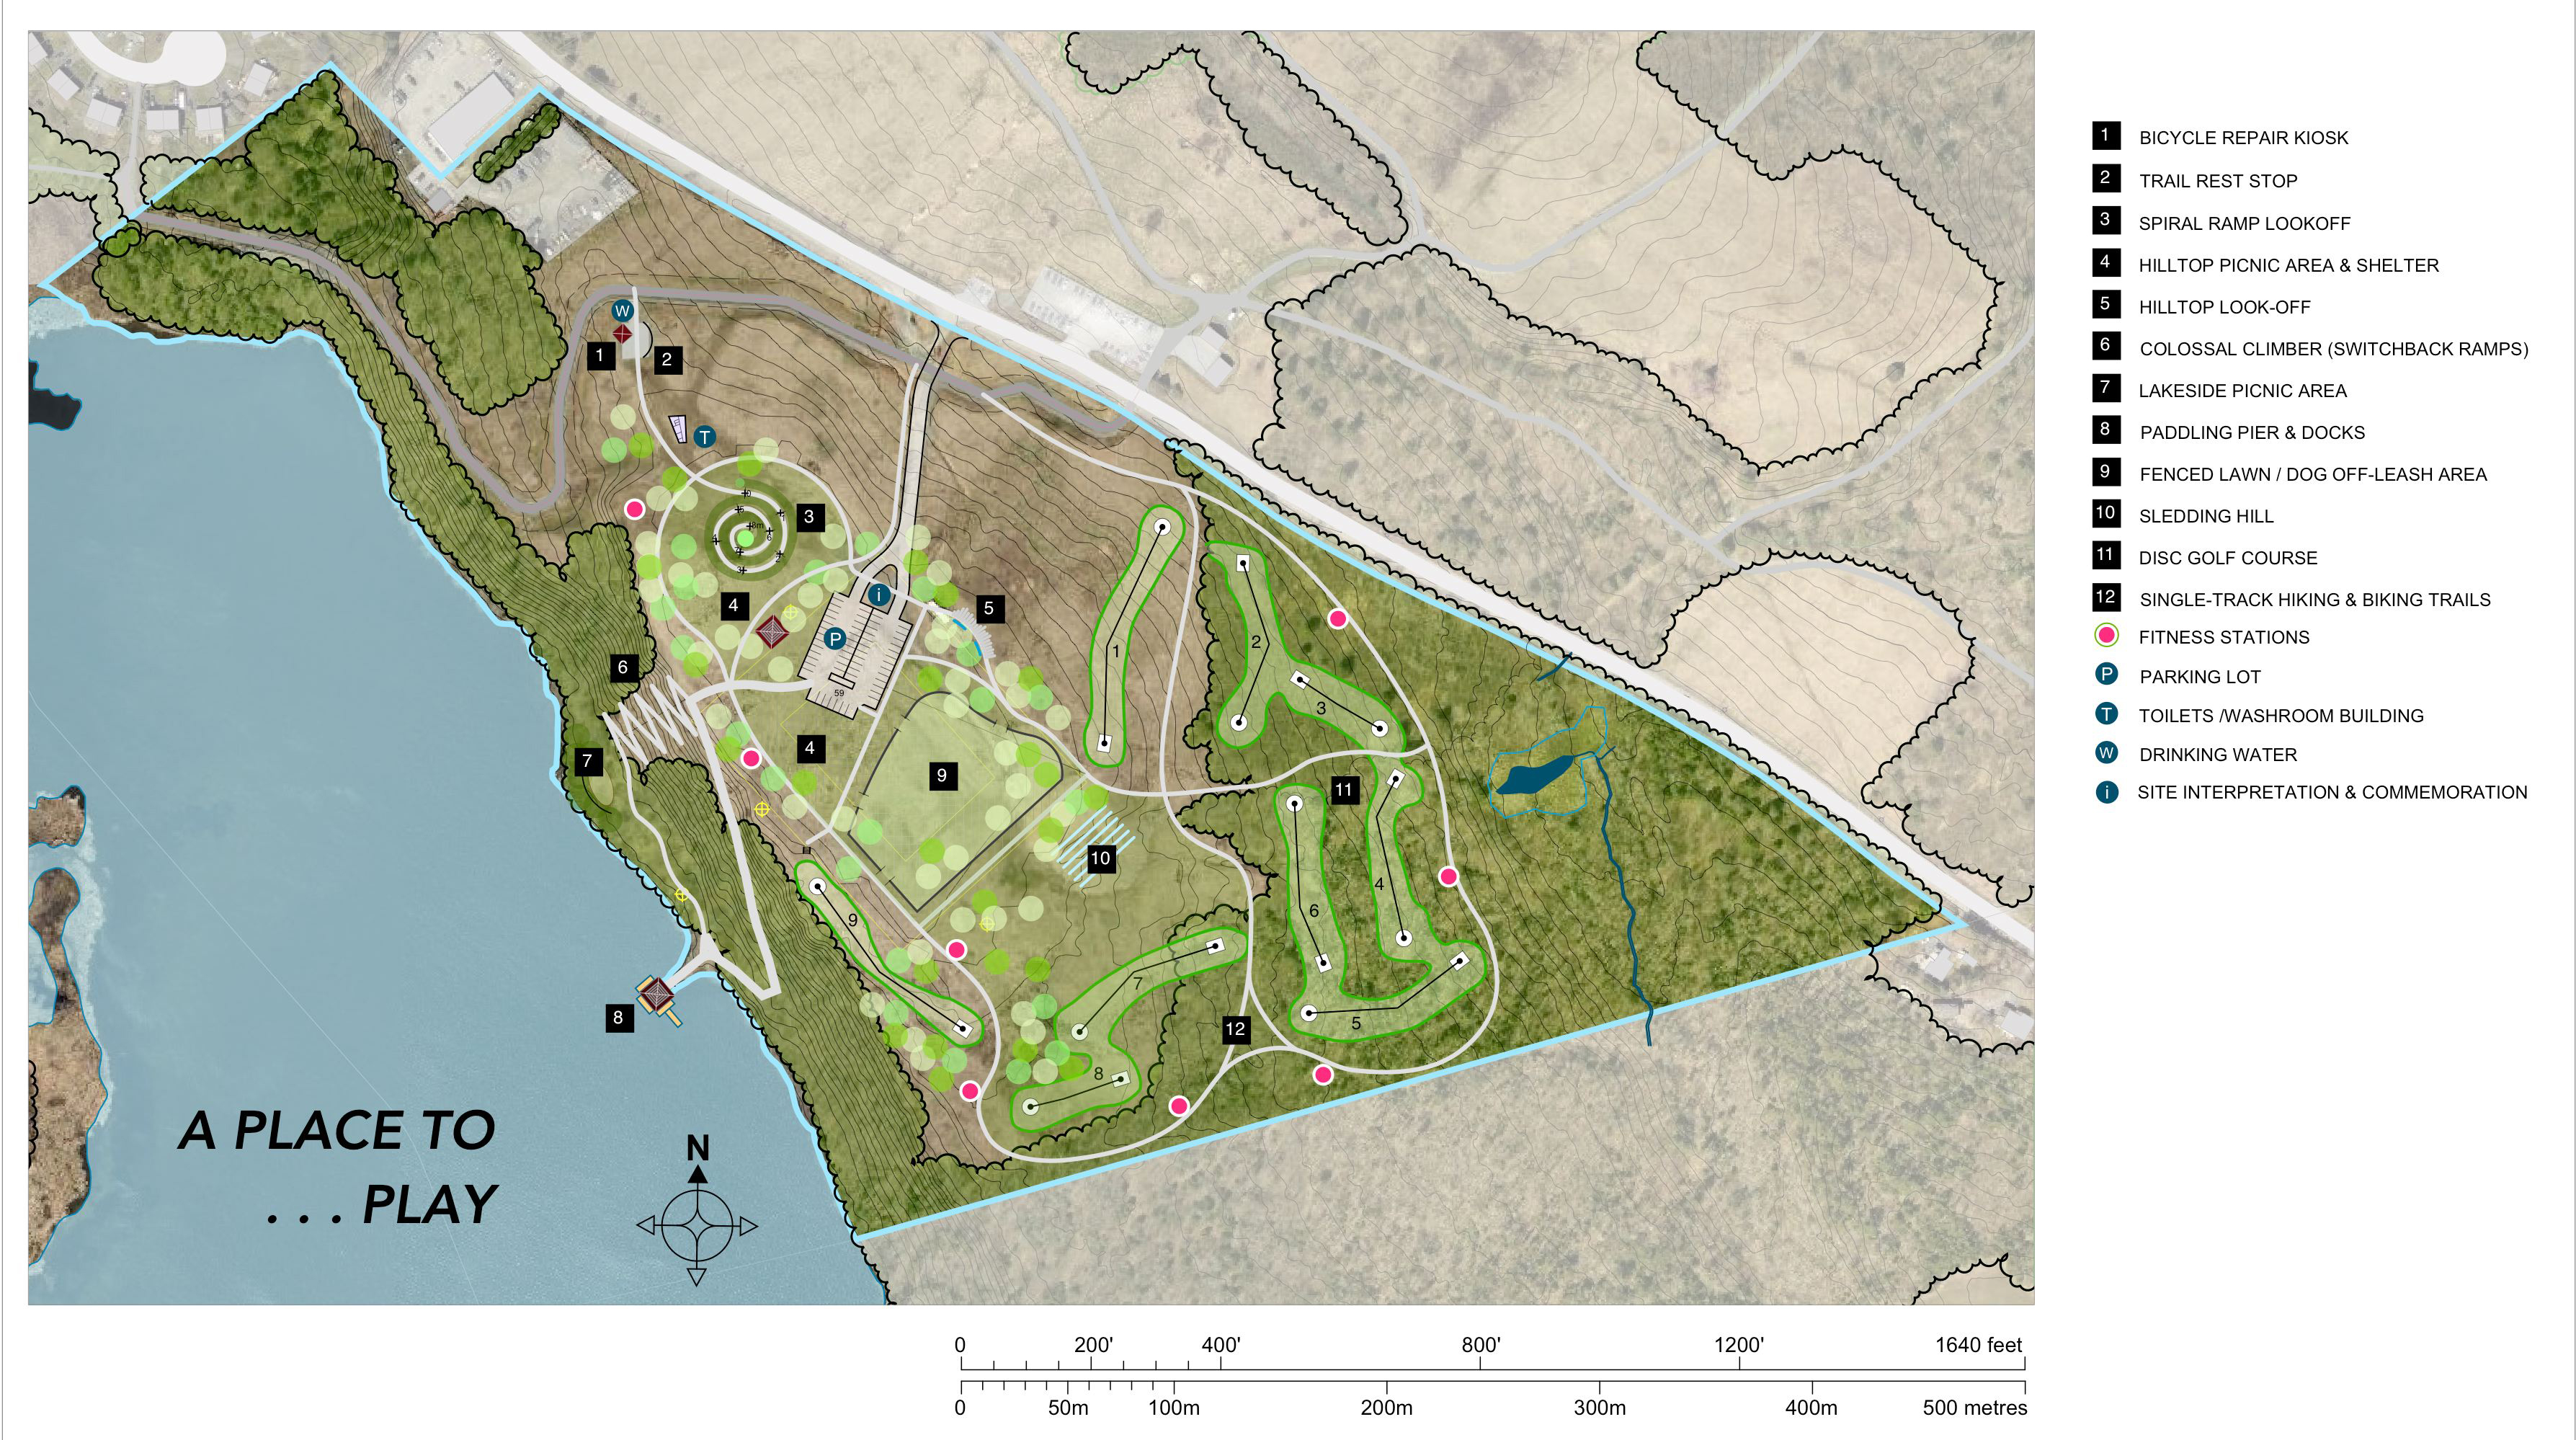 This is an image of the site plan for concept one, a place to play